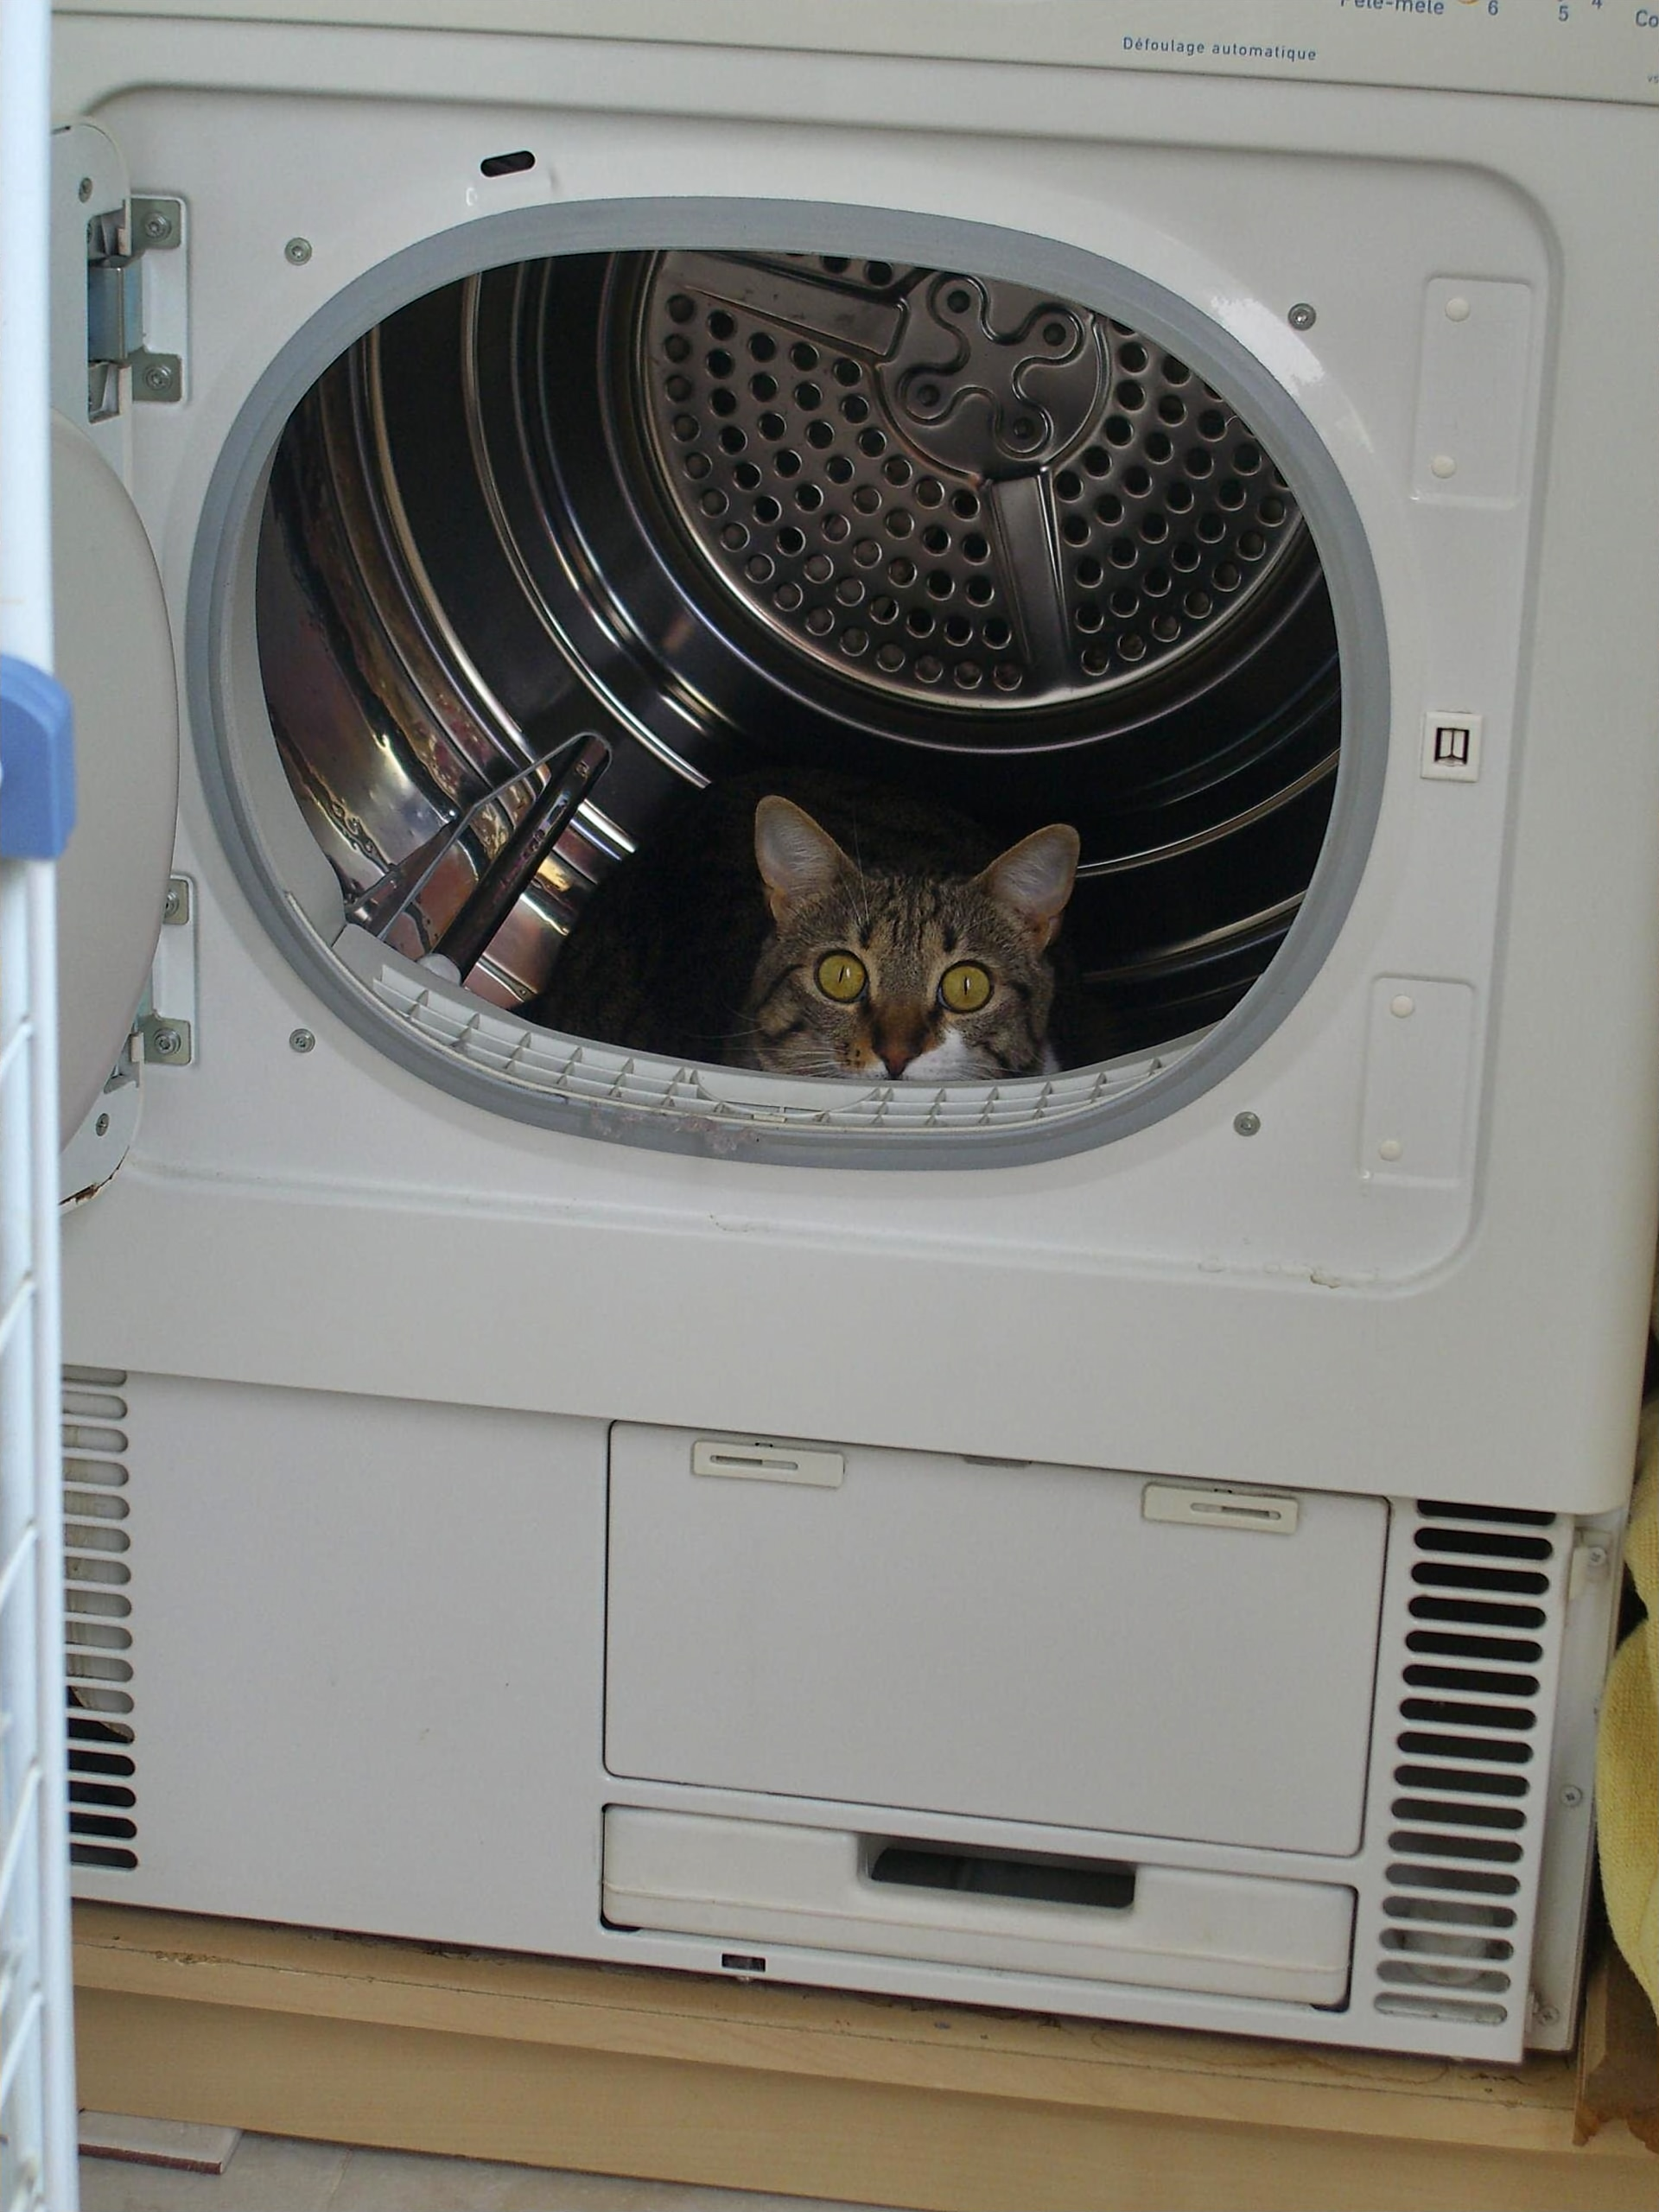 Brown cat in washing machine